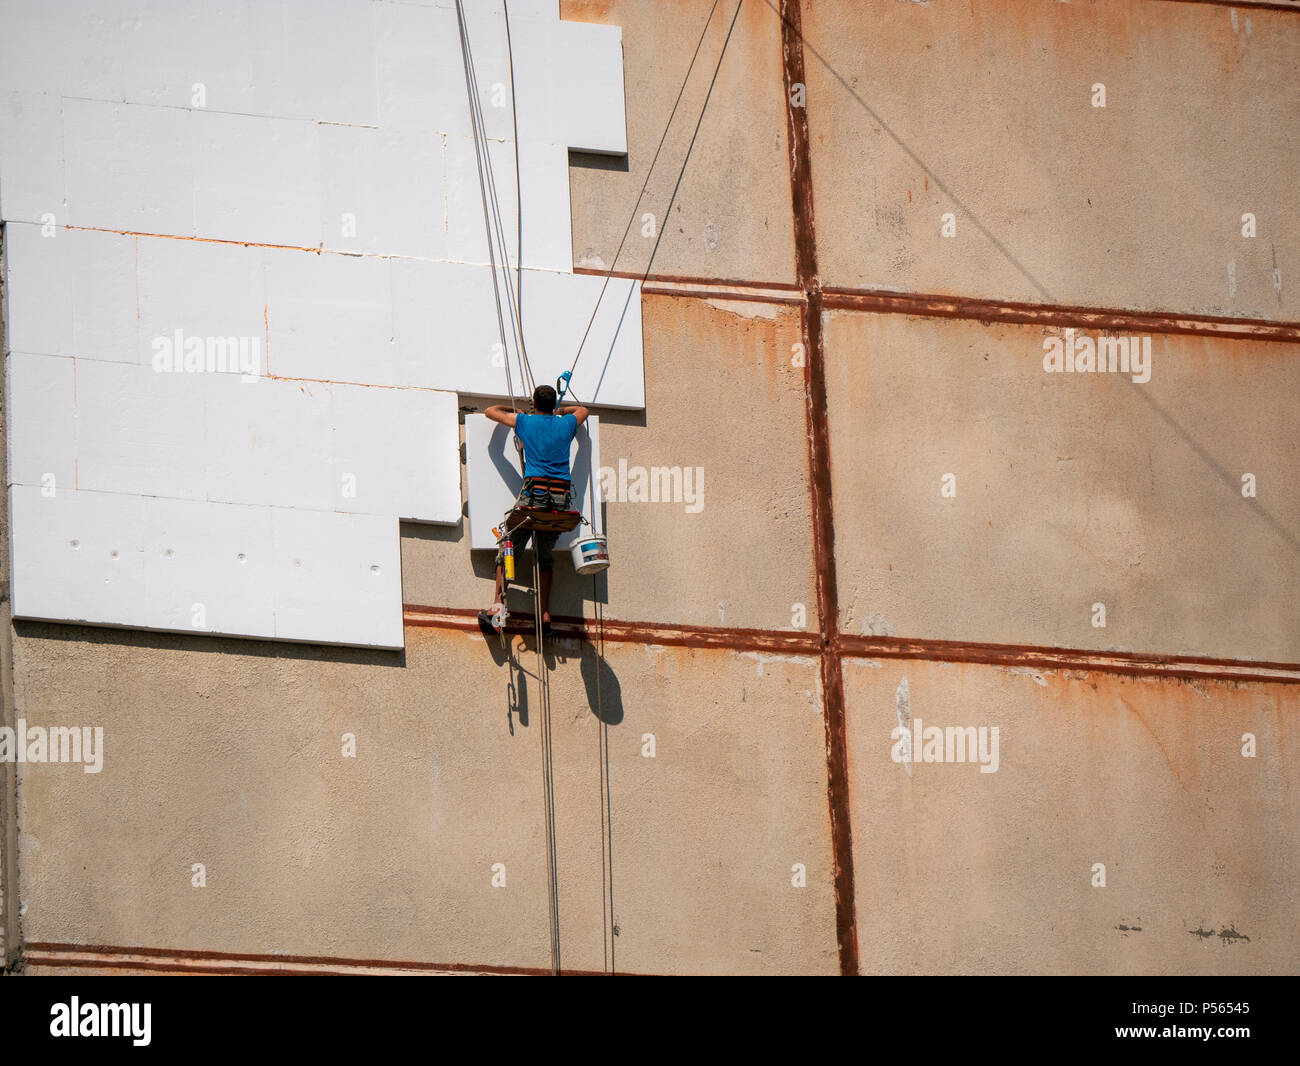 Insulation and Energy Saving Technology Concept. Worker Making Building with heat insulated facade - Stock Image